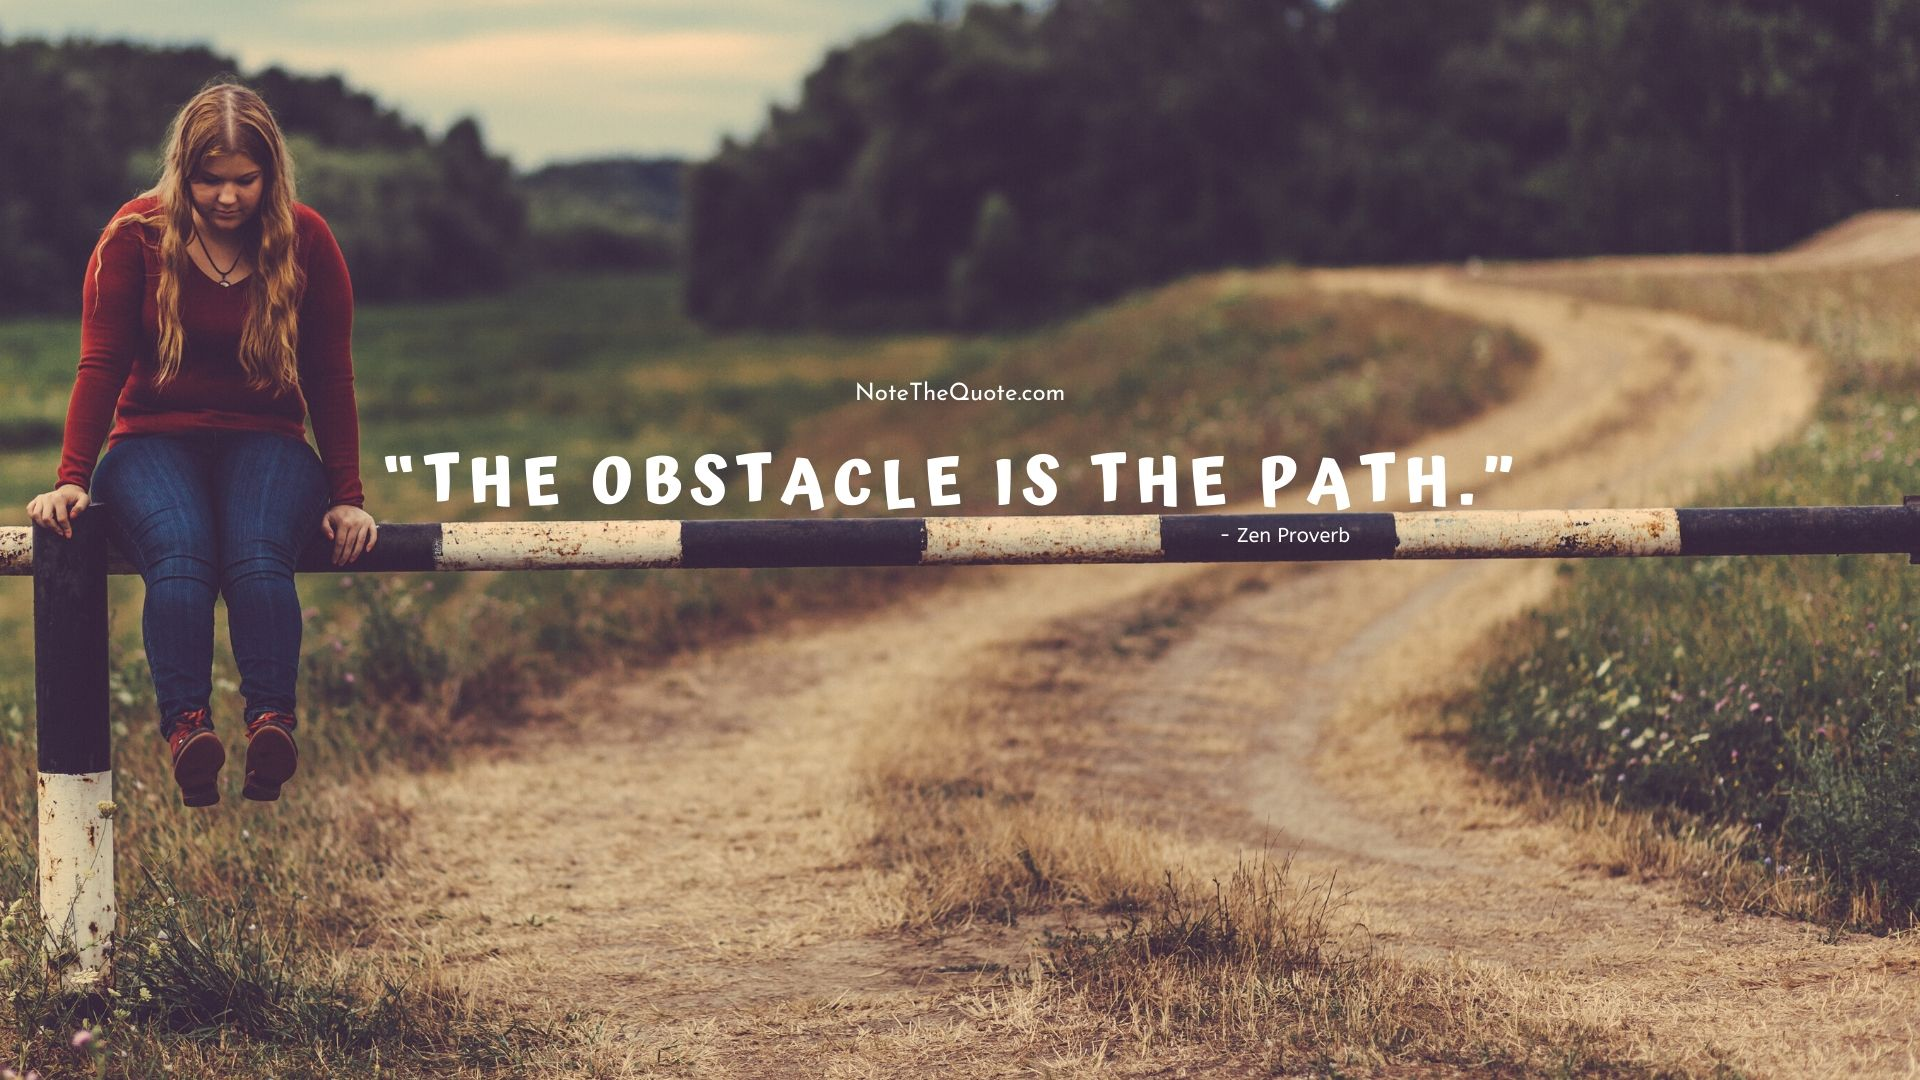 You are currently viewing The Obstacle is the path.